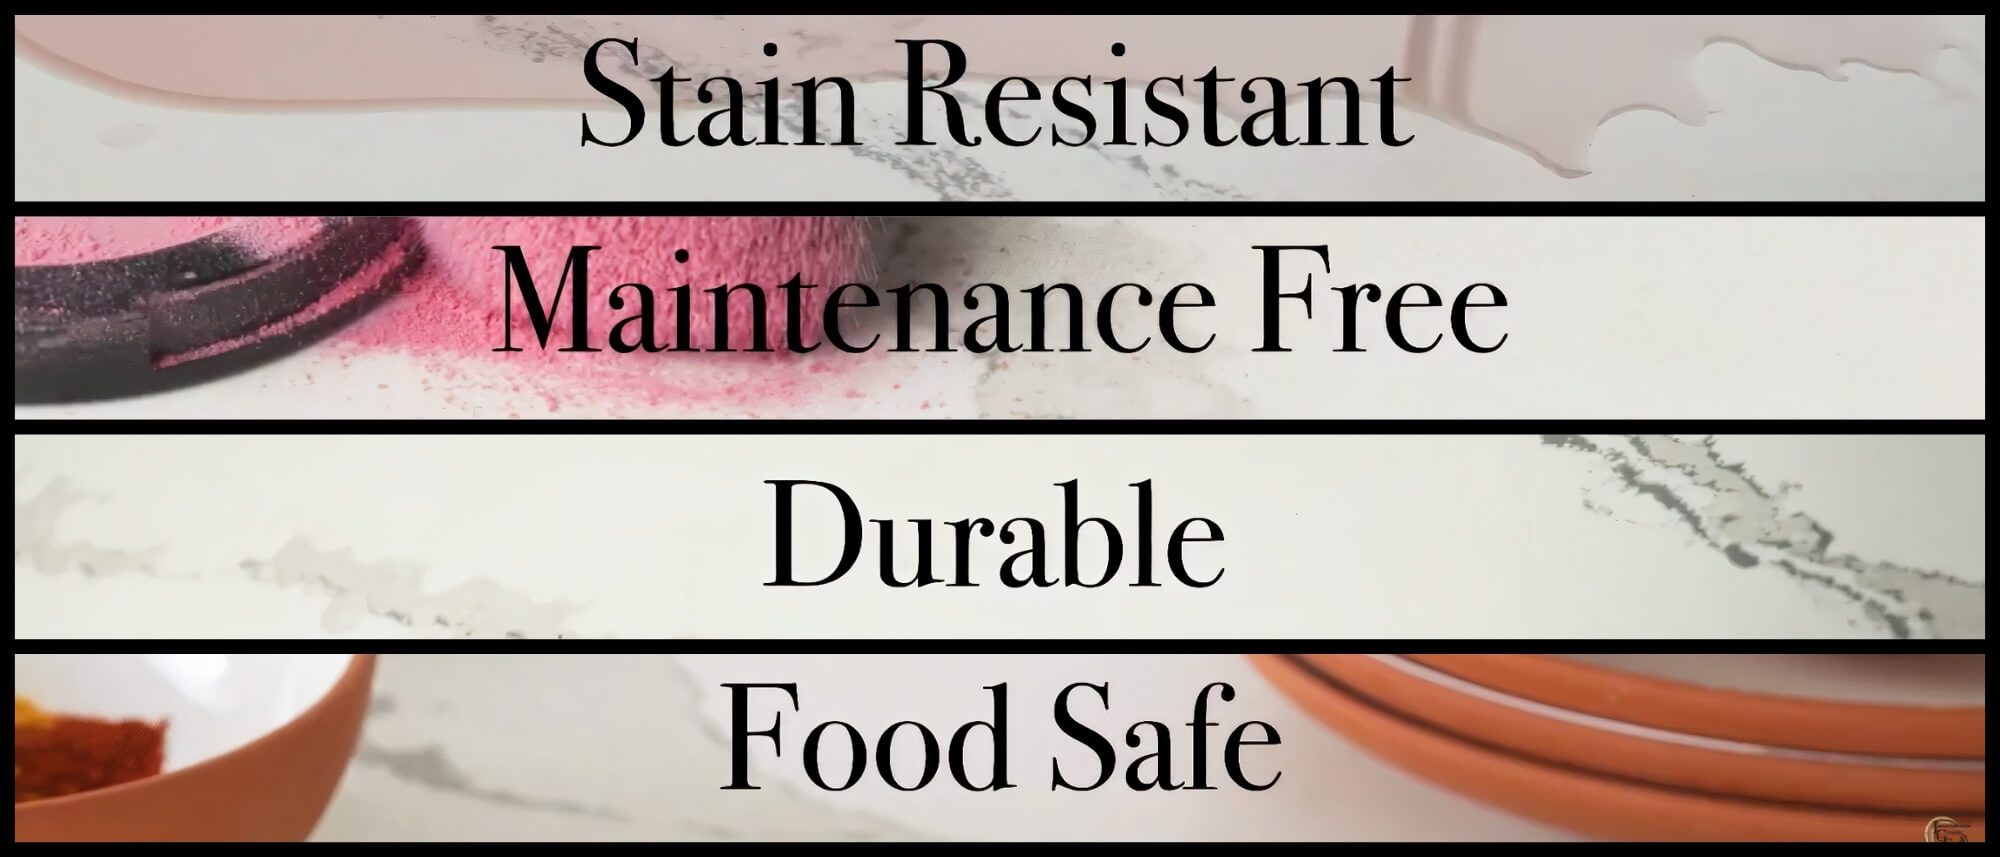 Cambria Is Stain Resistant Maintenance Free Durable Food Safe NSF51